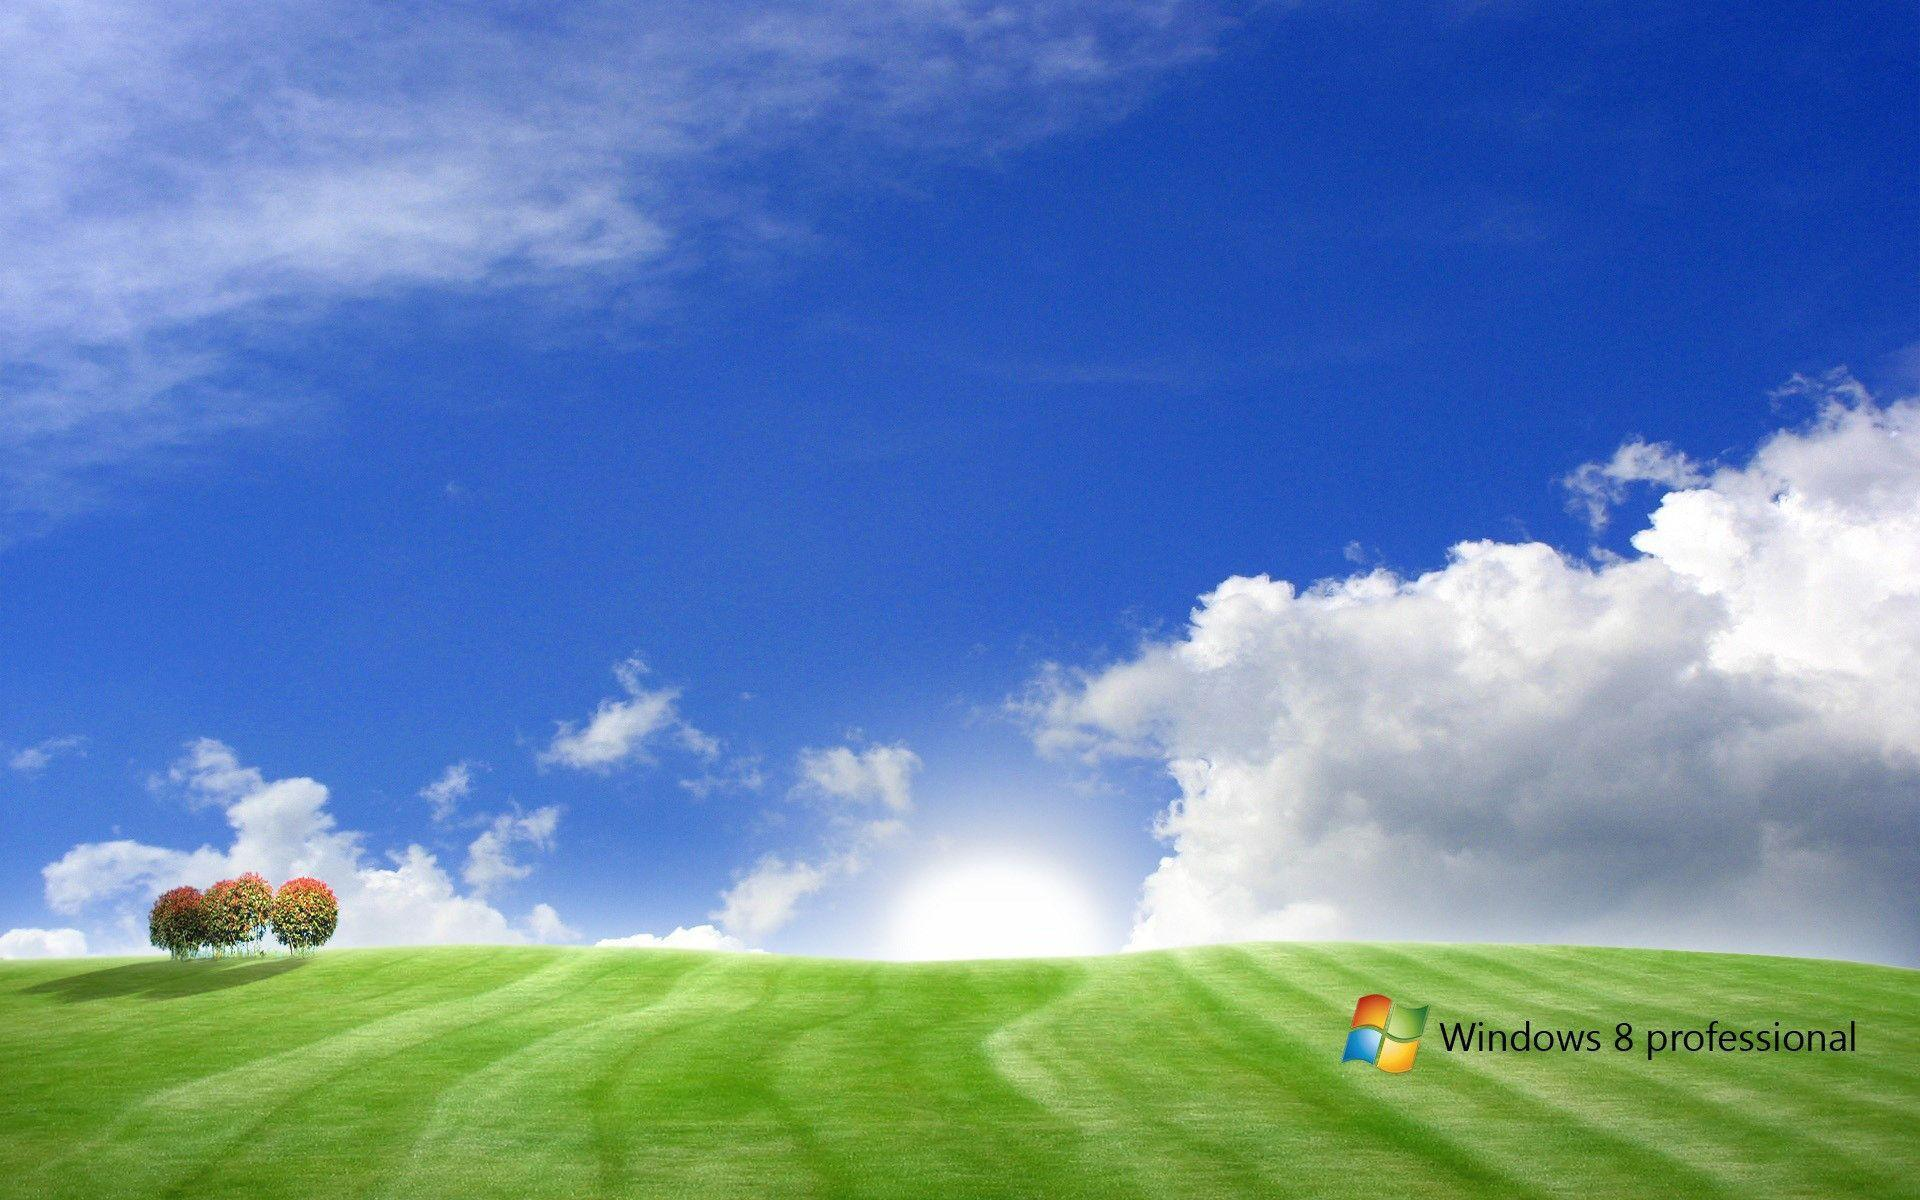 Cute Funny Backgrounds Wallpapers Cave Desktop Background: Funny Windows Desktop Backgrounds